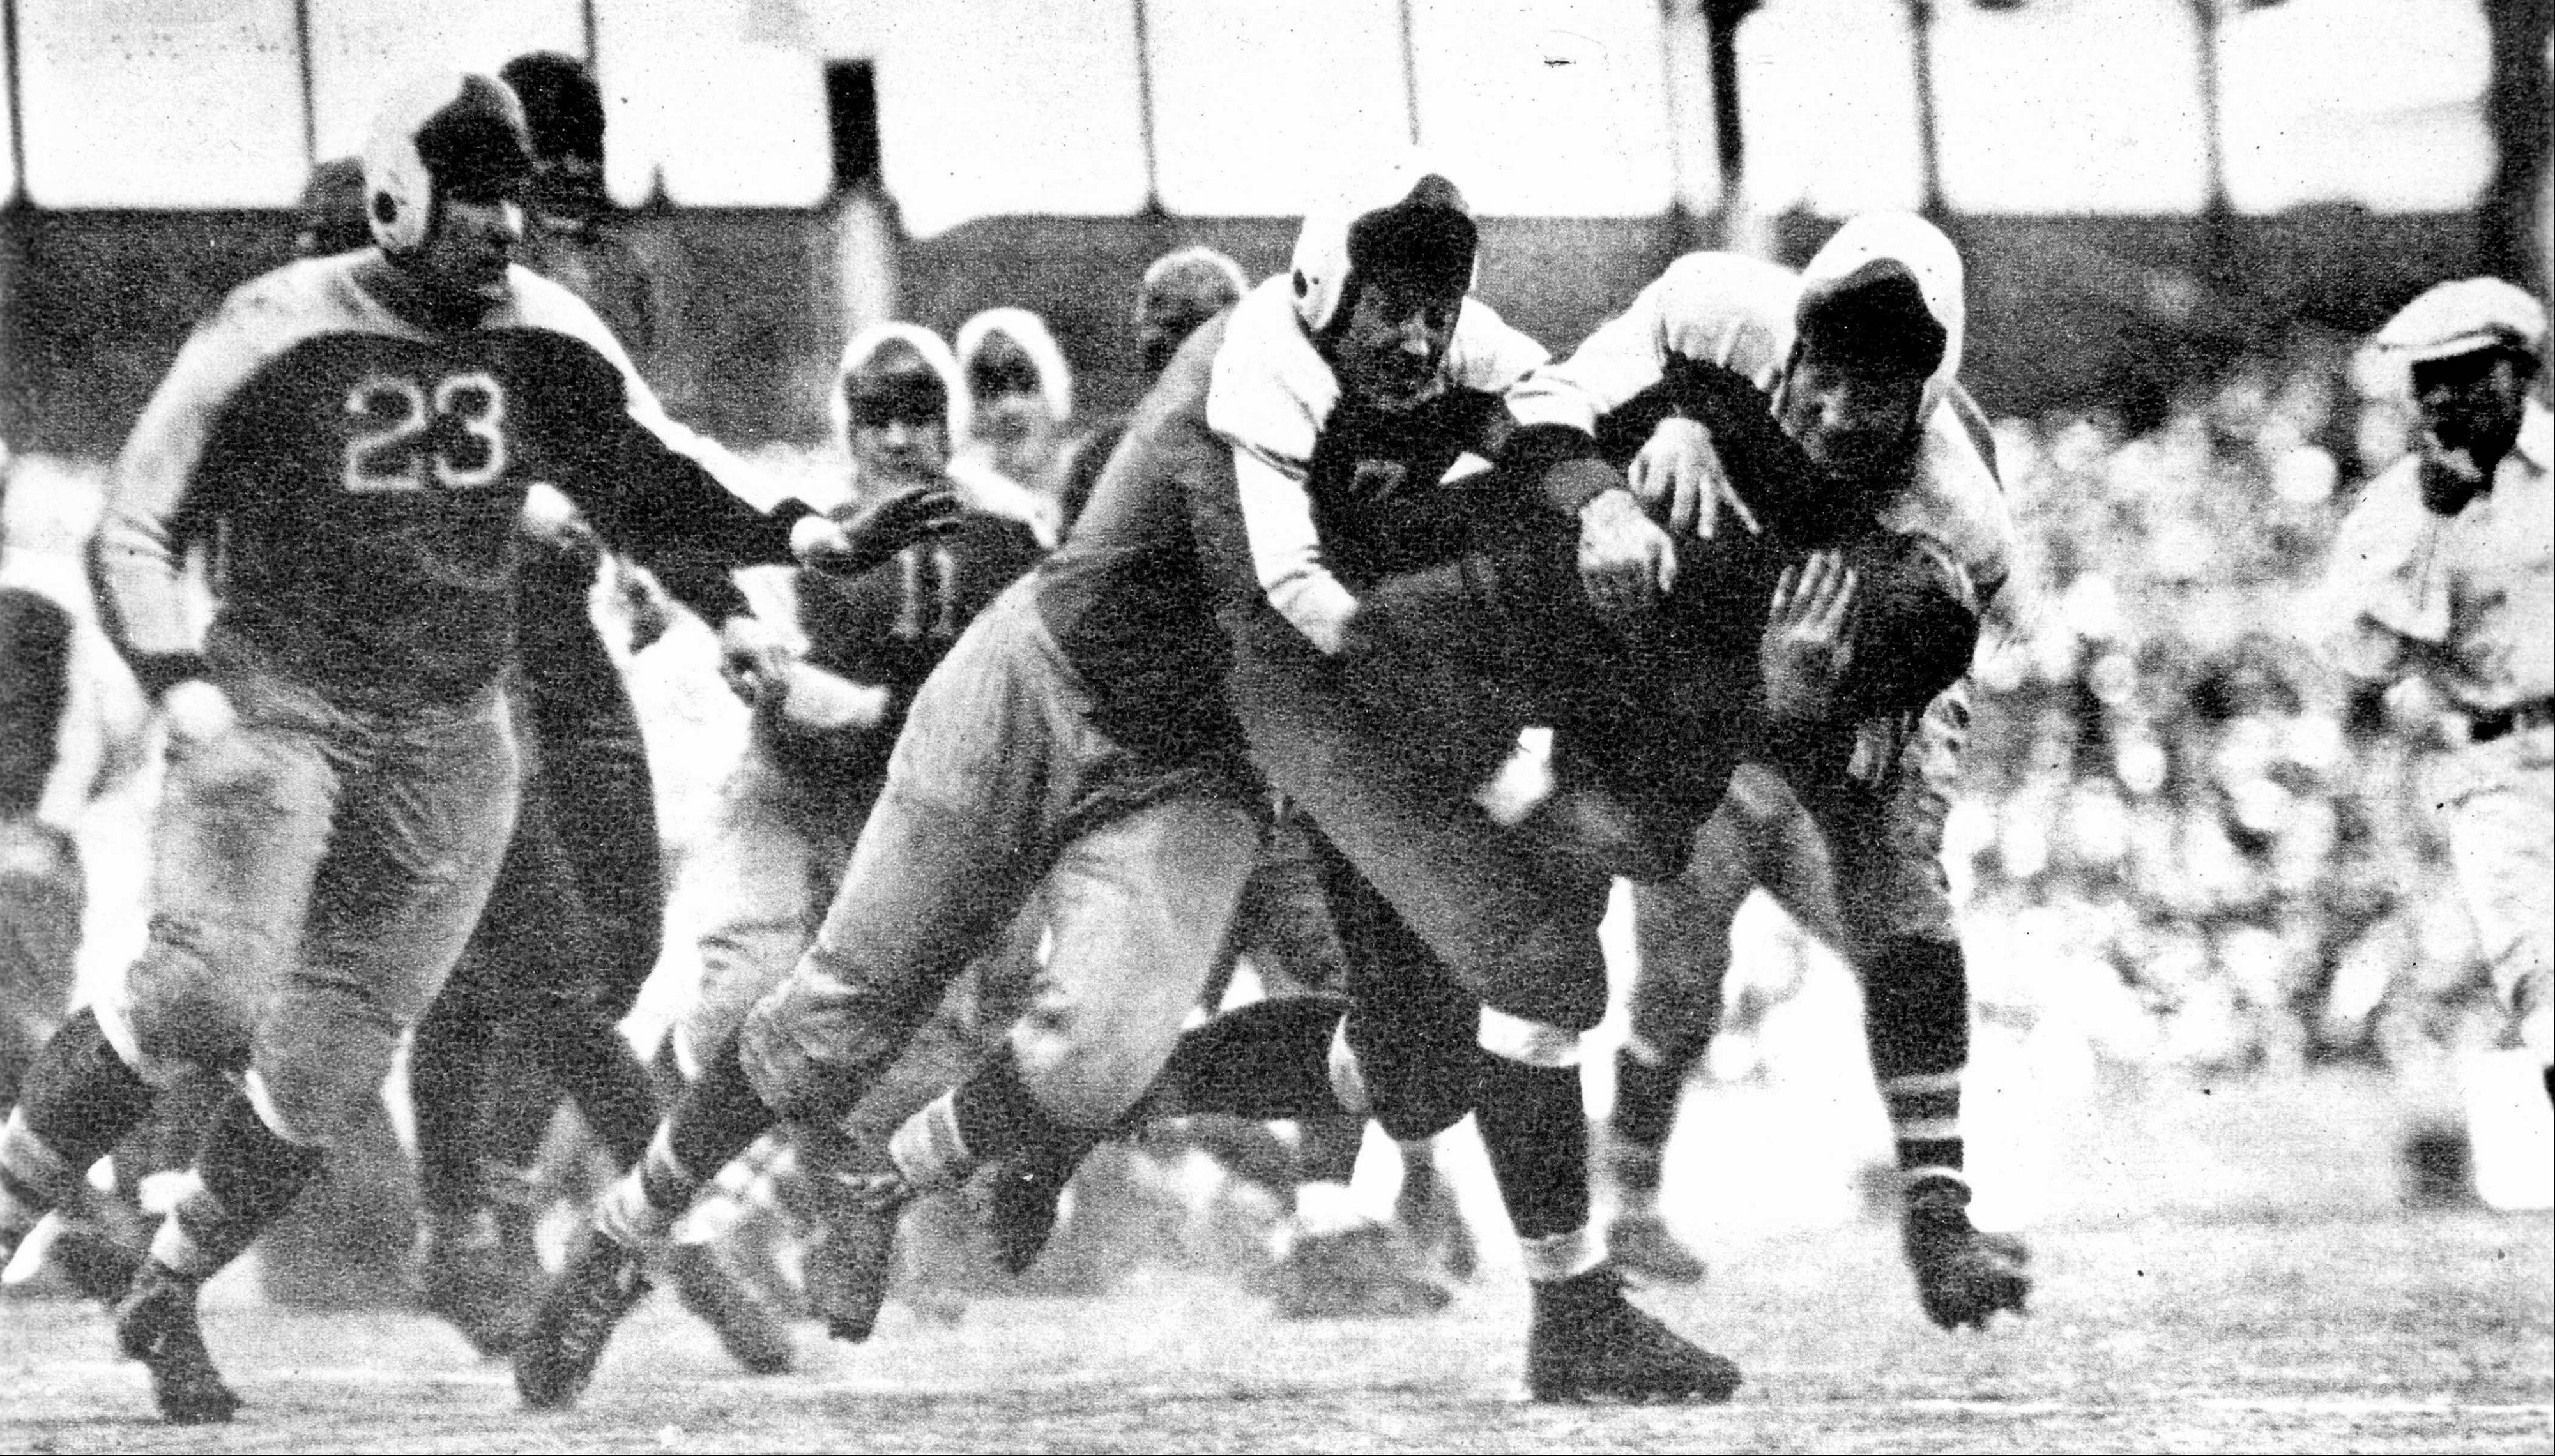 In this photo taken on Dec. 9, 1934, and released by the Pro Football Hall of Fame, Chicago Bears fullback Bronko Nagurski is tackled by New York Giants' Mel Hein during a Giants' 30-13 victory over the Bears in the NFL Championship game at the Polo Grounds in New York.